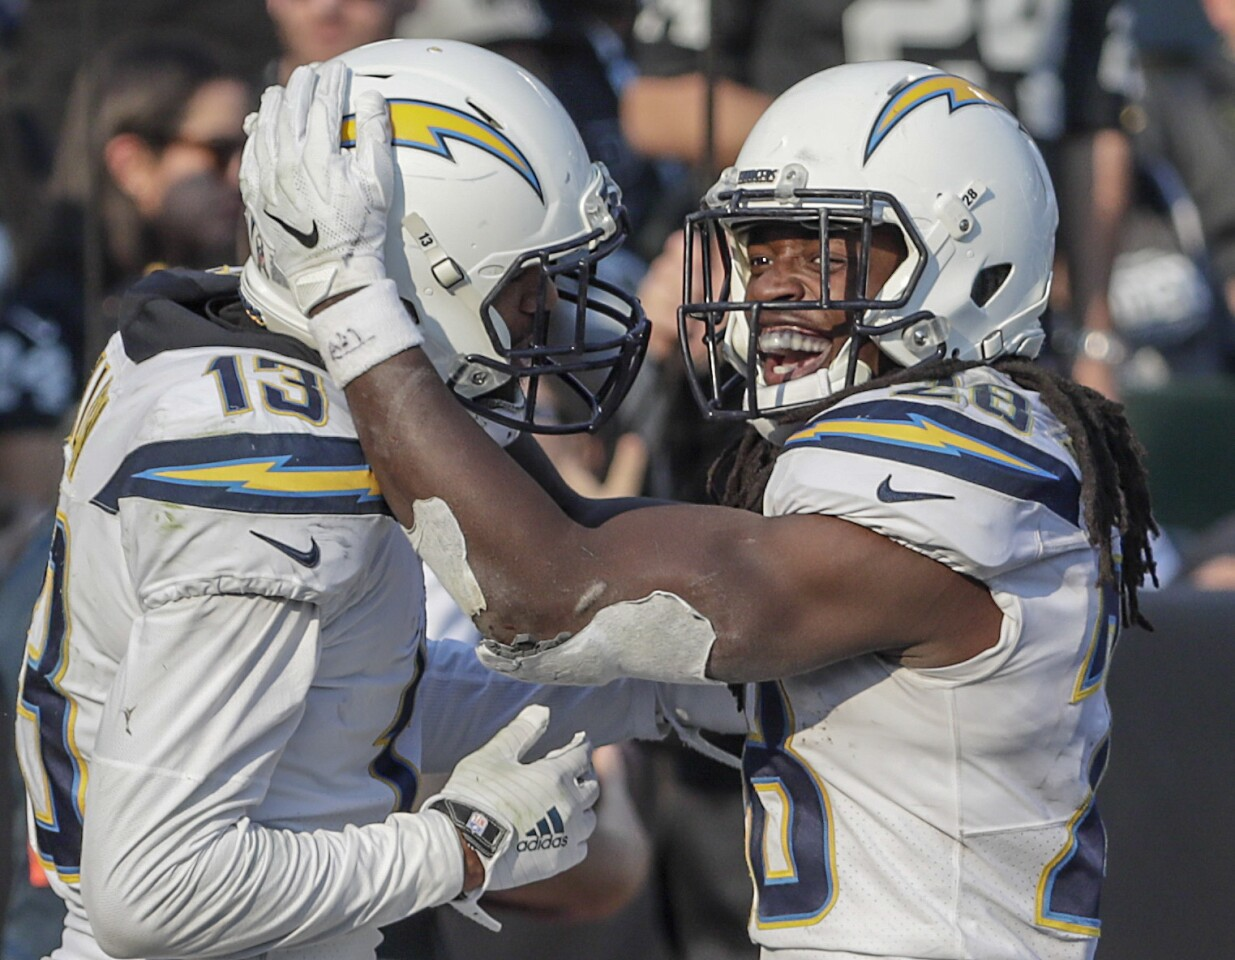 Chargers running back Melvin Gordon III celebrates with teammate Keenan Allen after scoring a touchdown early in the third quarter at Oakland-Alameda County Coliseum on Sunday.